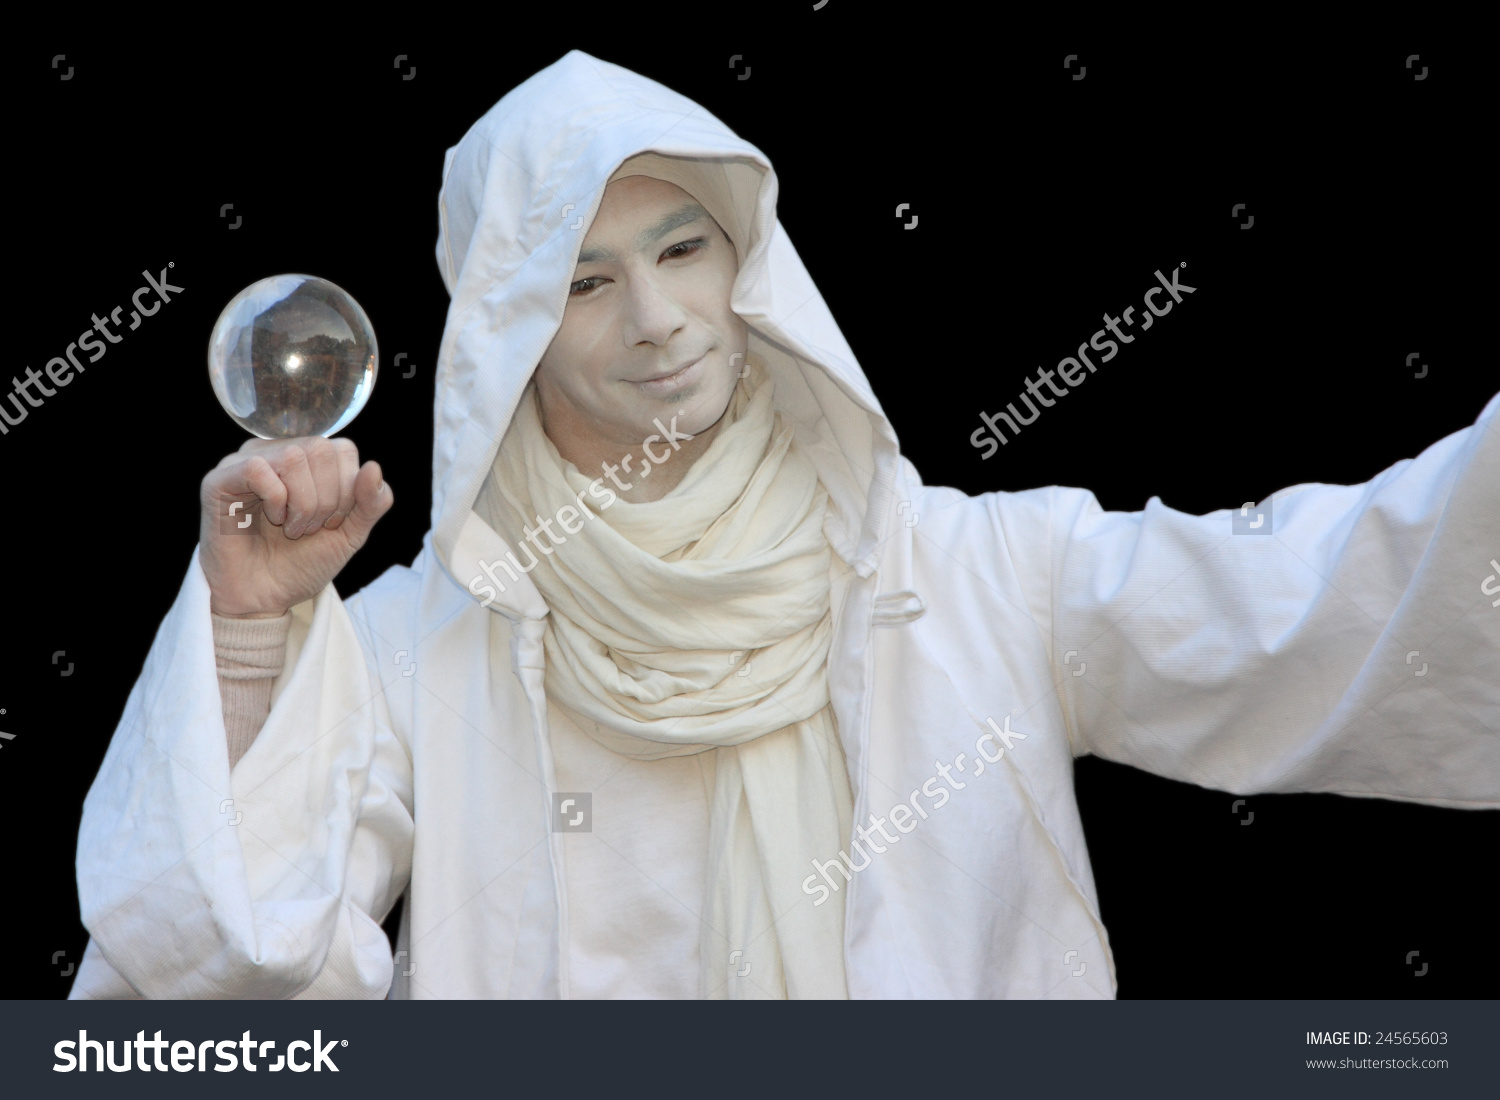 stock-photo-white-wizard-manipulating-crystal-balls-isolated-on-black-background-24565603